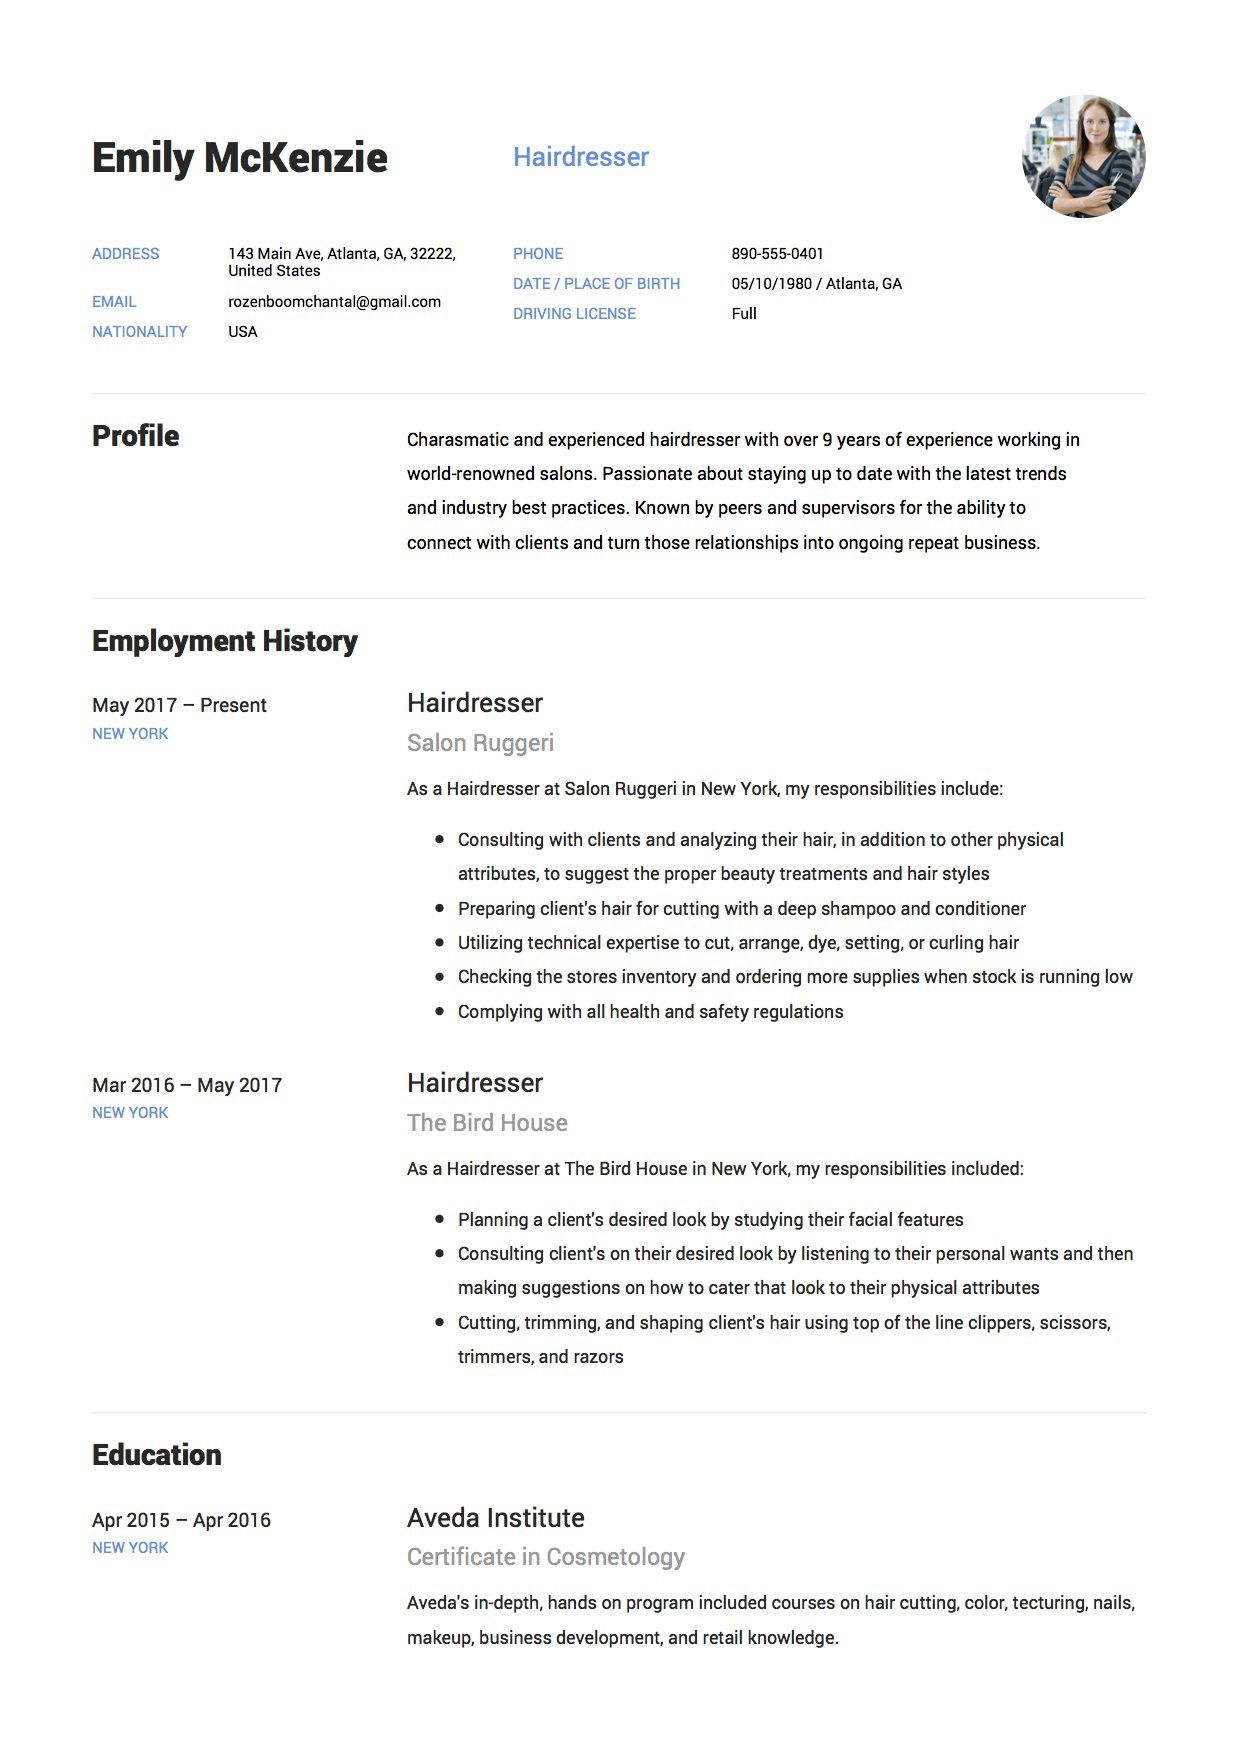 hair stylist resume example professional sample unbelievable templates high definition Resume Professional Hair Stylist Resume Sample